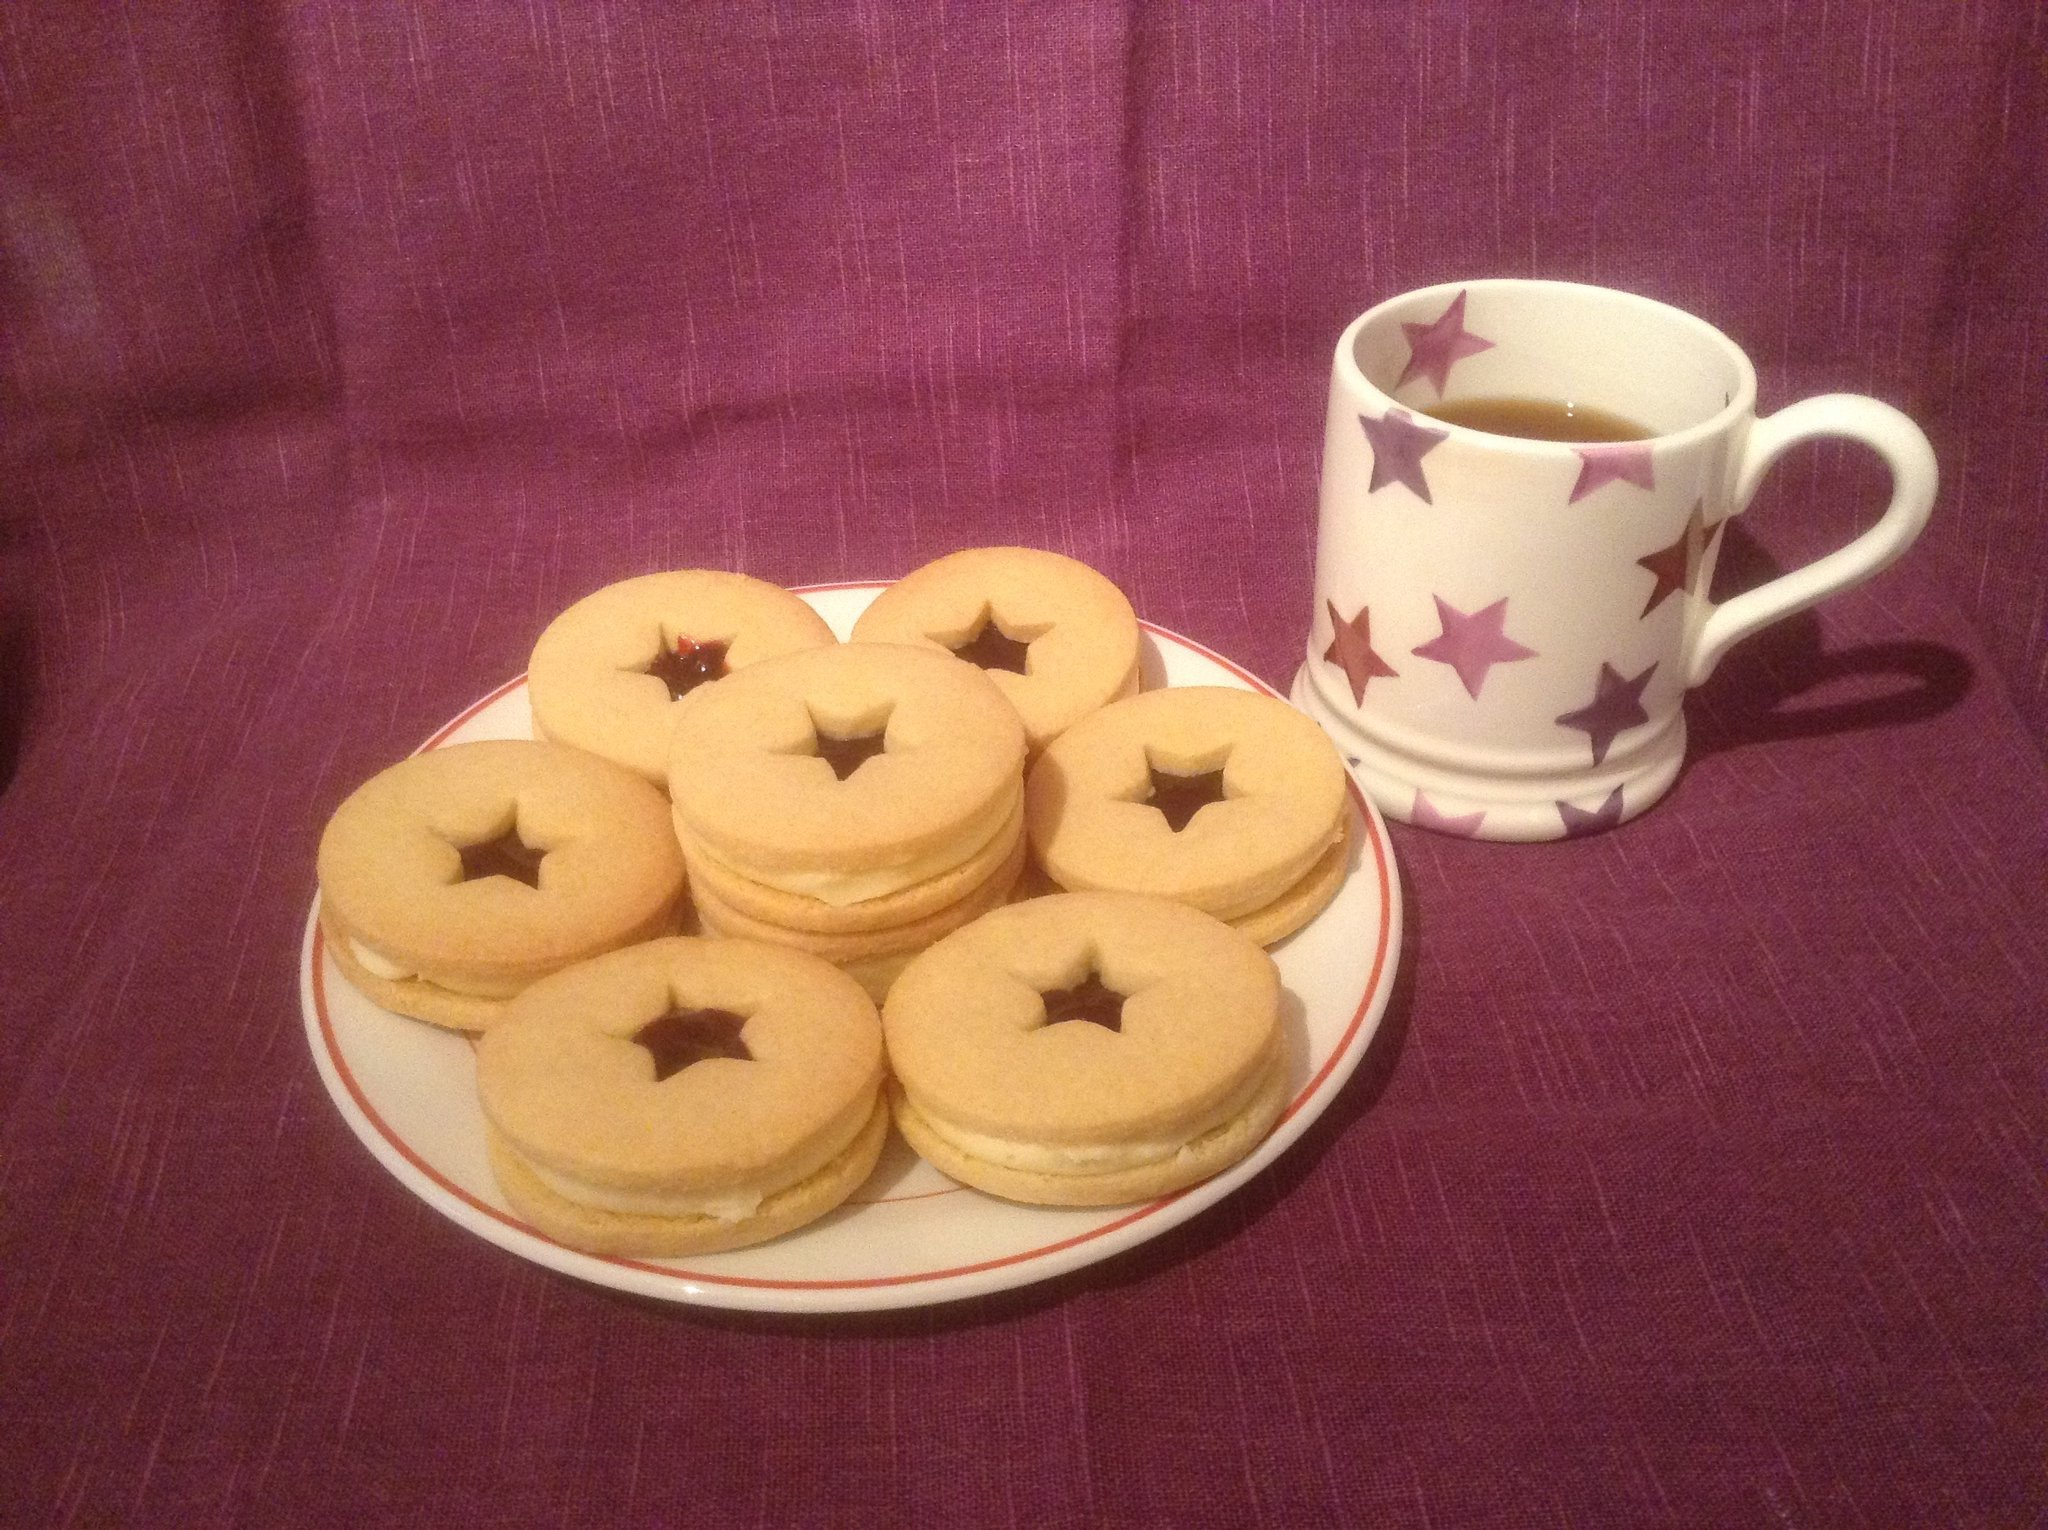 Purple Star Cakes to match our mug - Perfect